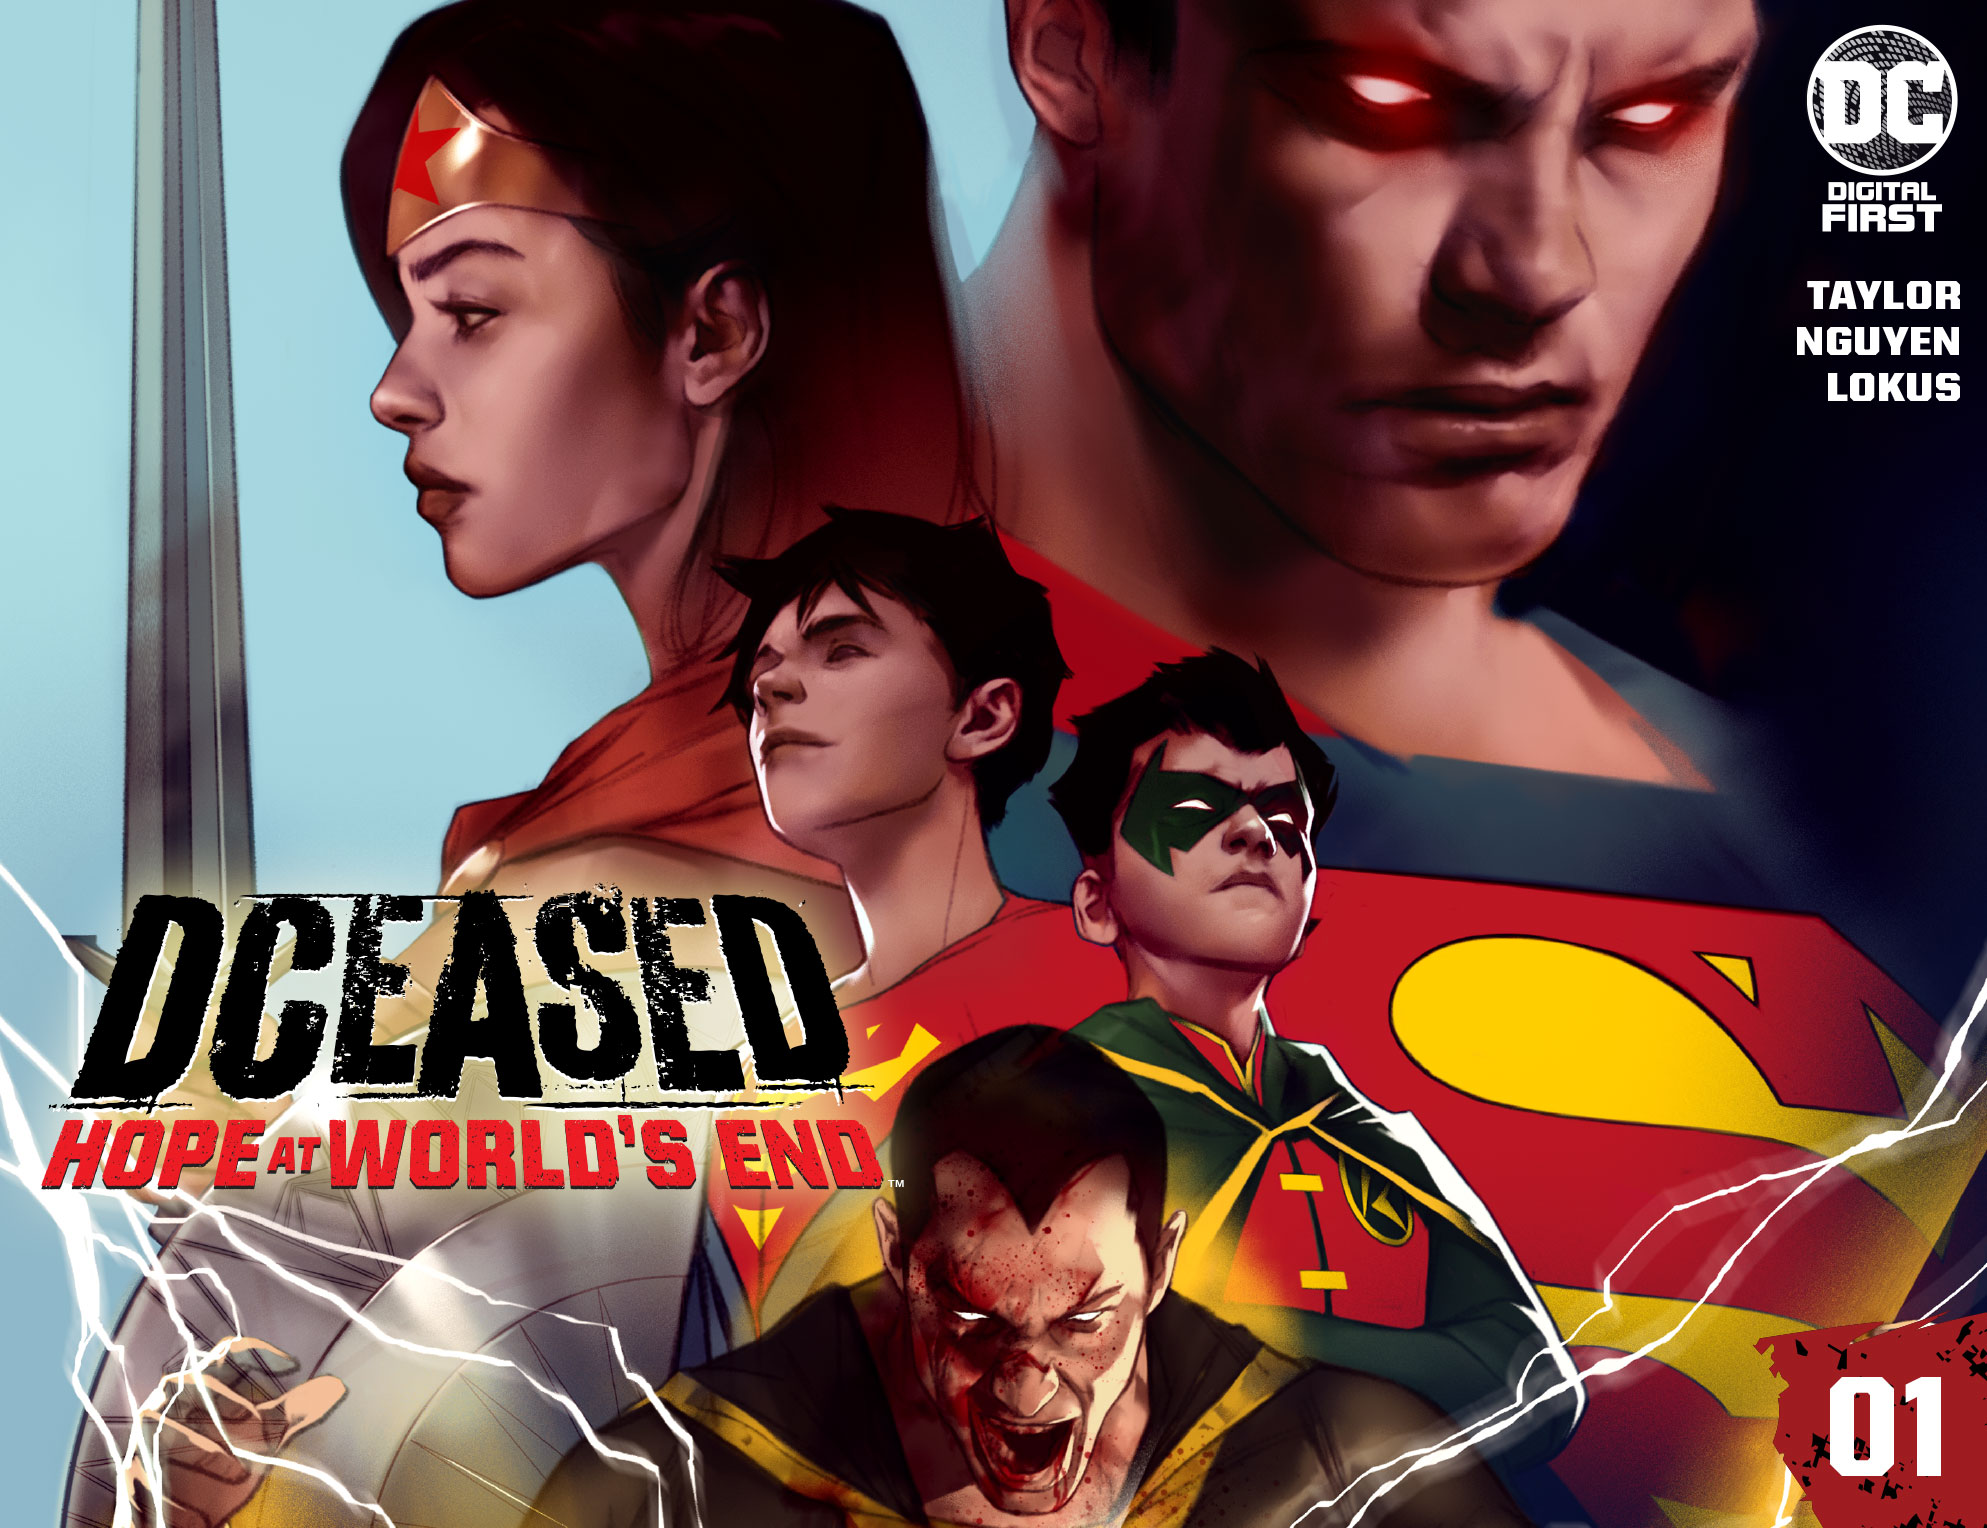 DCeased: Hope at World's End starts today and runs bi-monthly for 14 chapters.